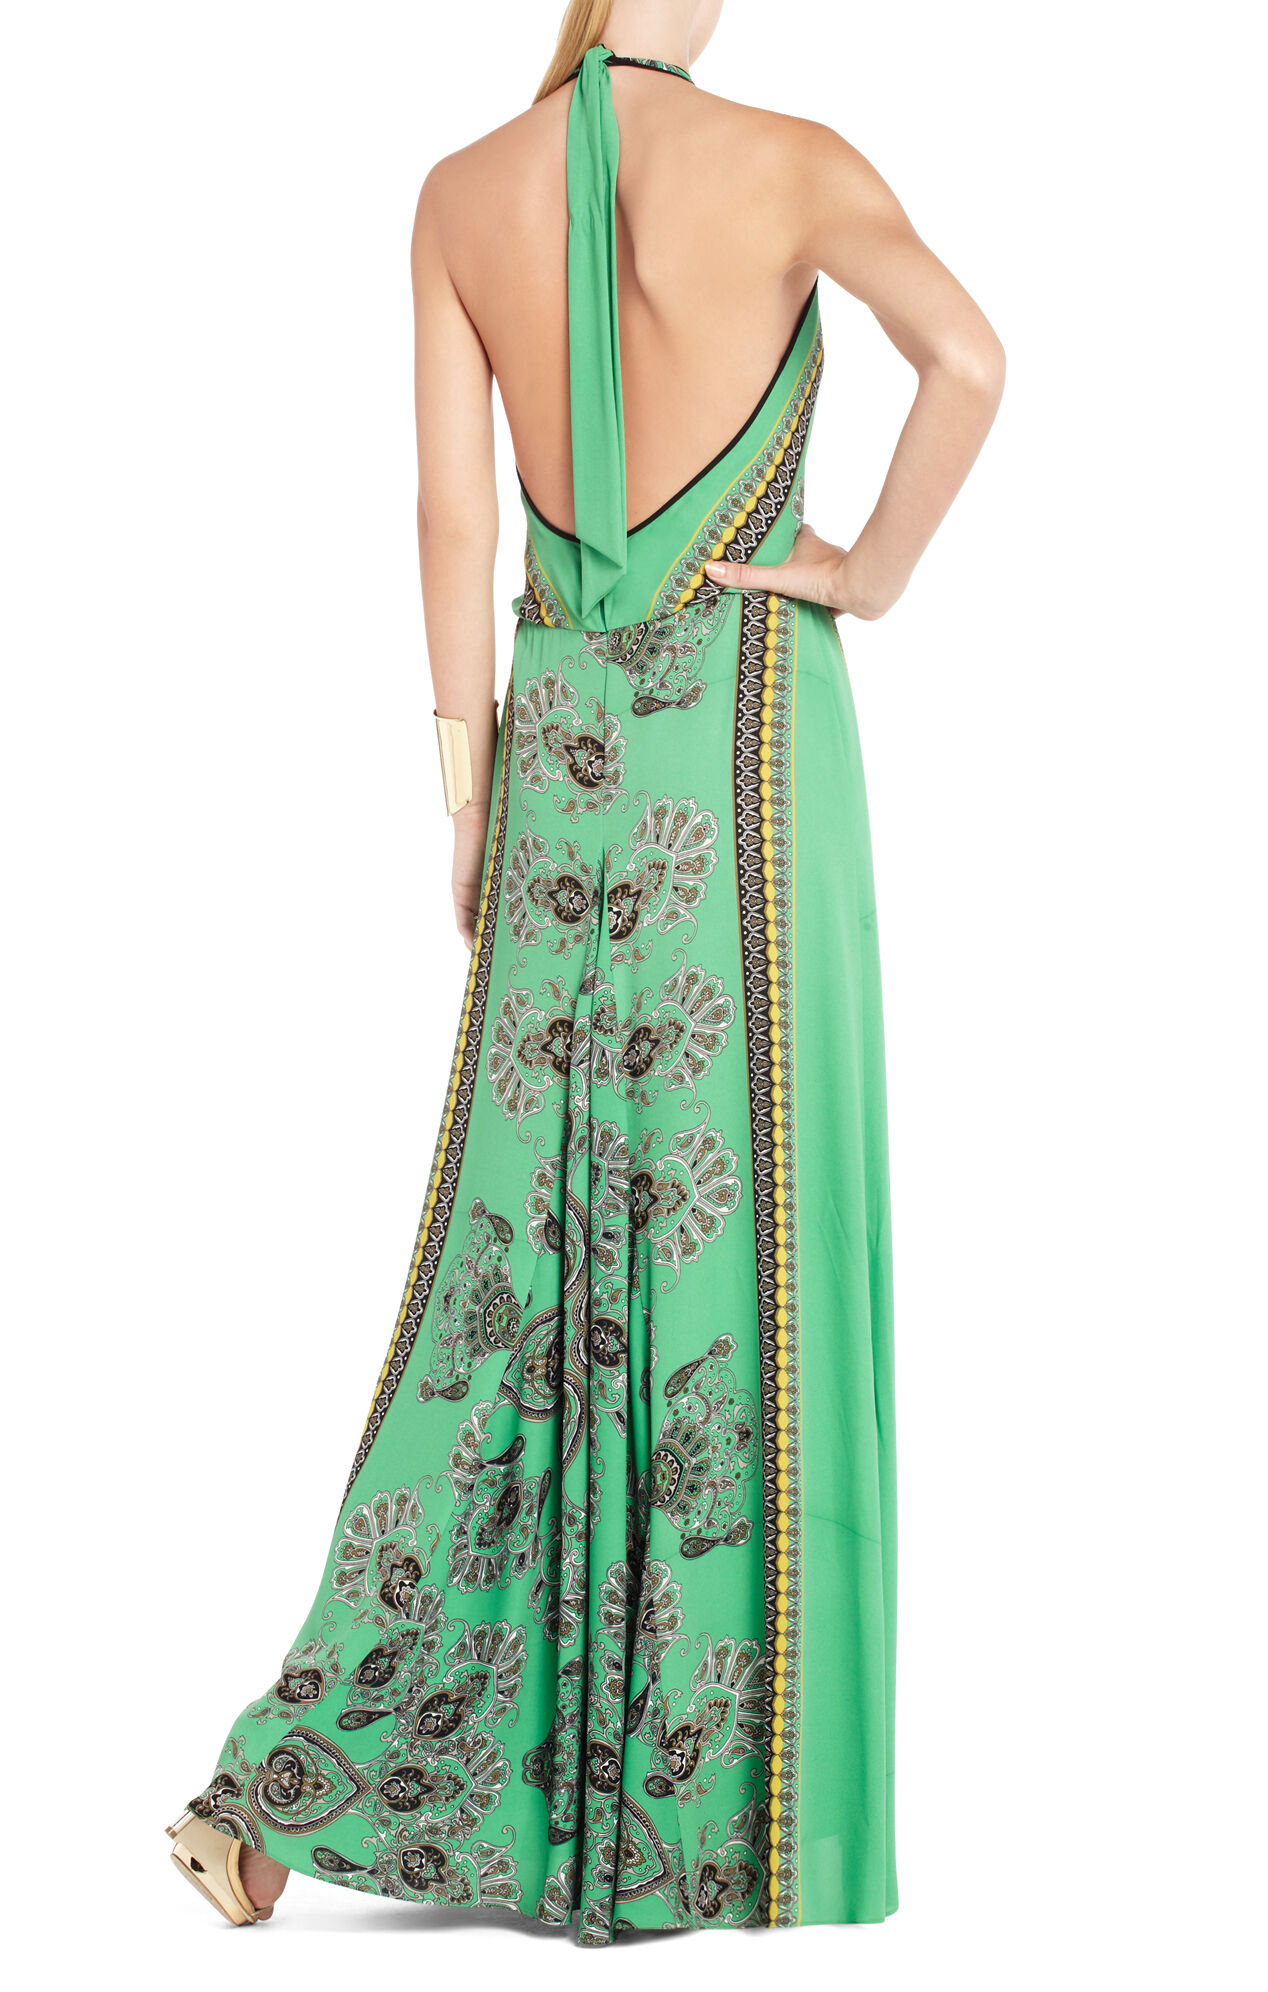 Arlenis Scarf-Print Evening Gown